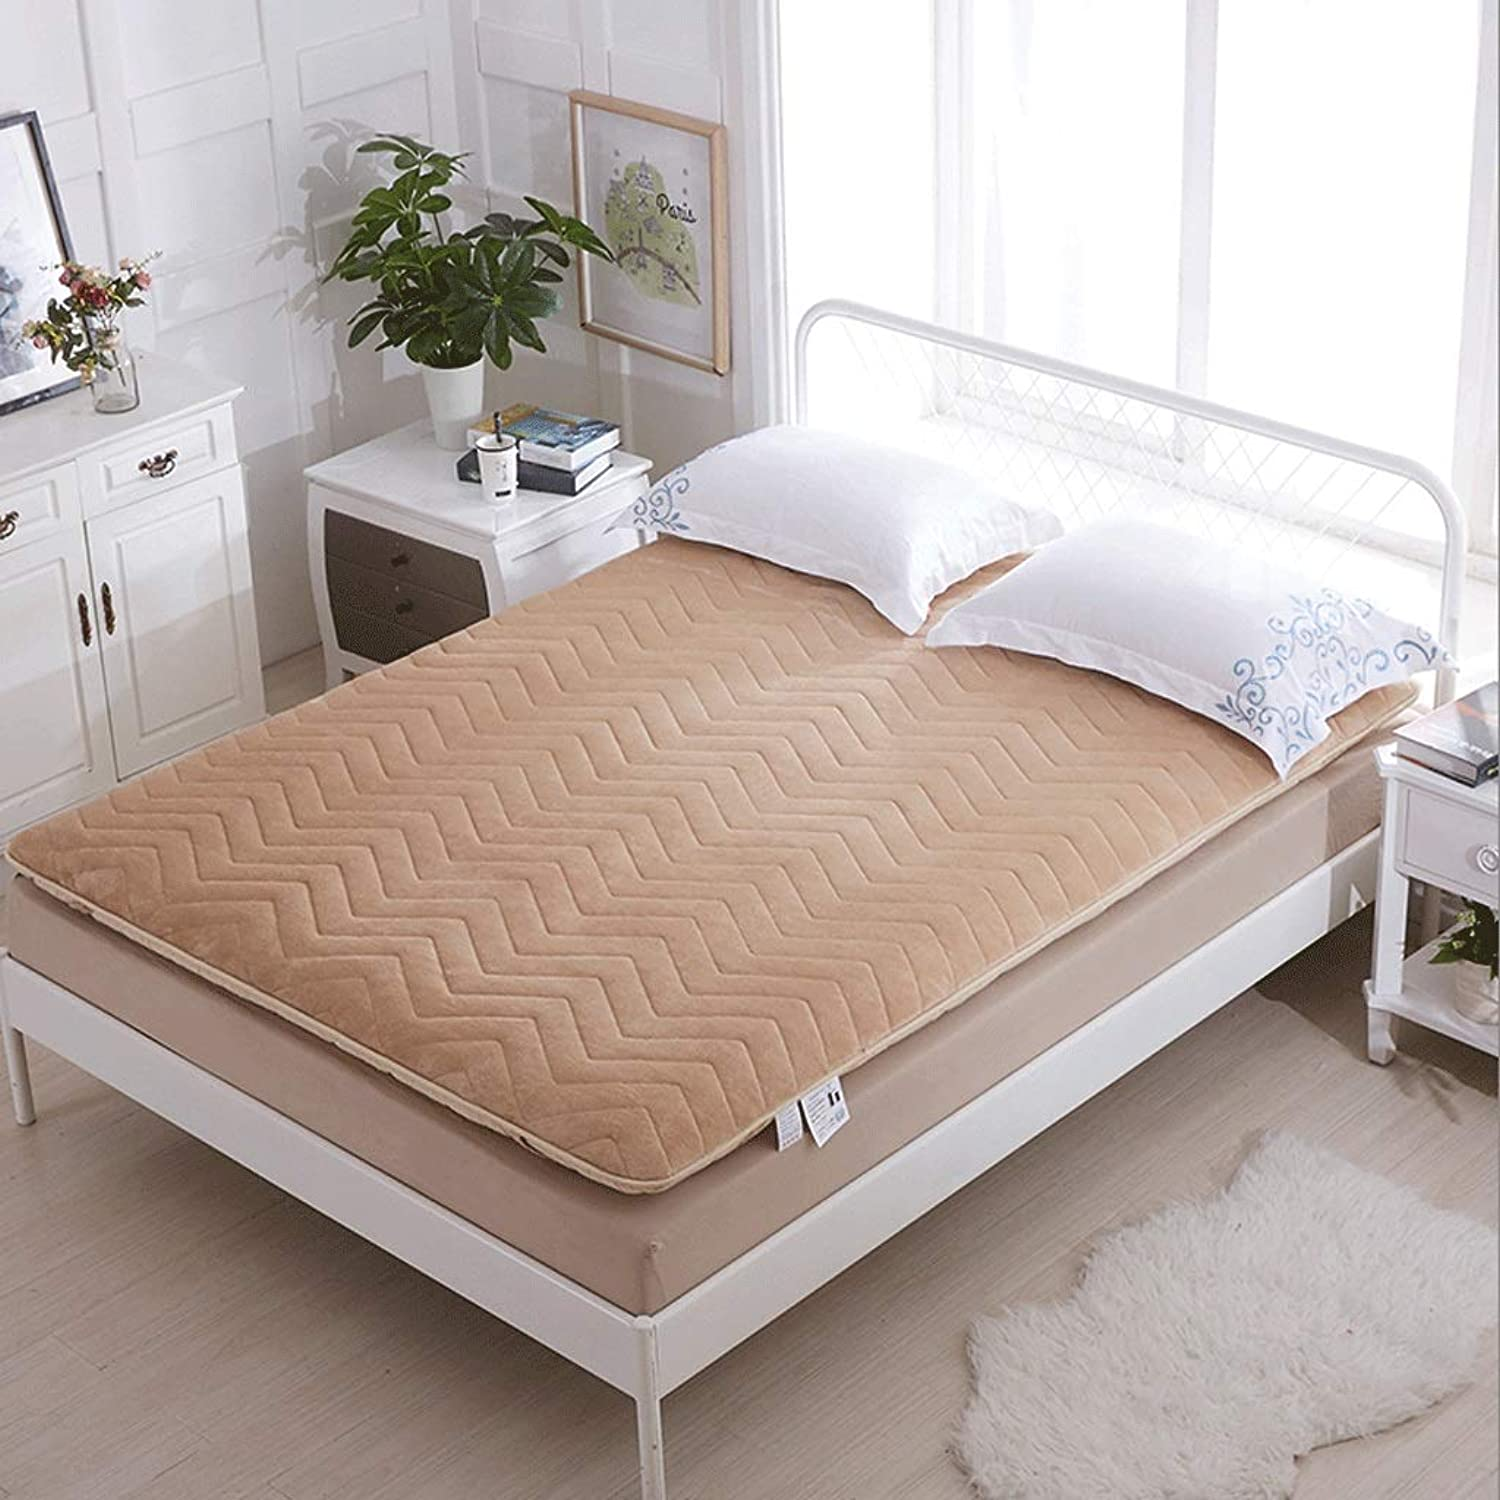 Cotton and Linen Single Mattress, Household Thick Tatami Mat, Foldable (color   C, Size   120x200x5cm)